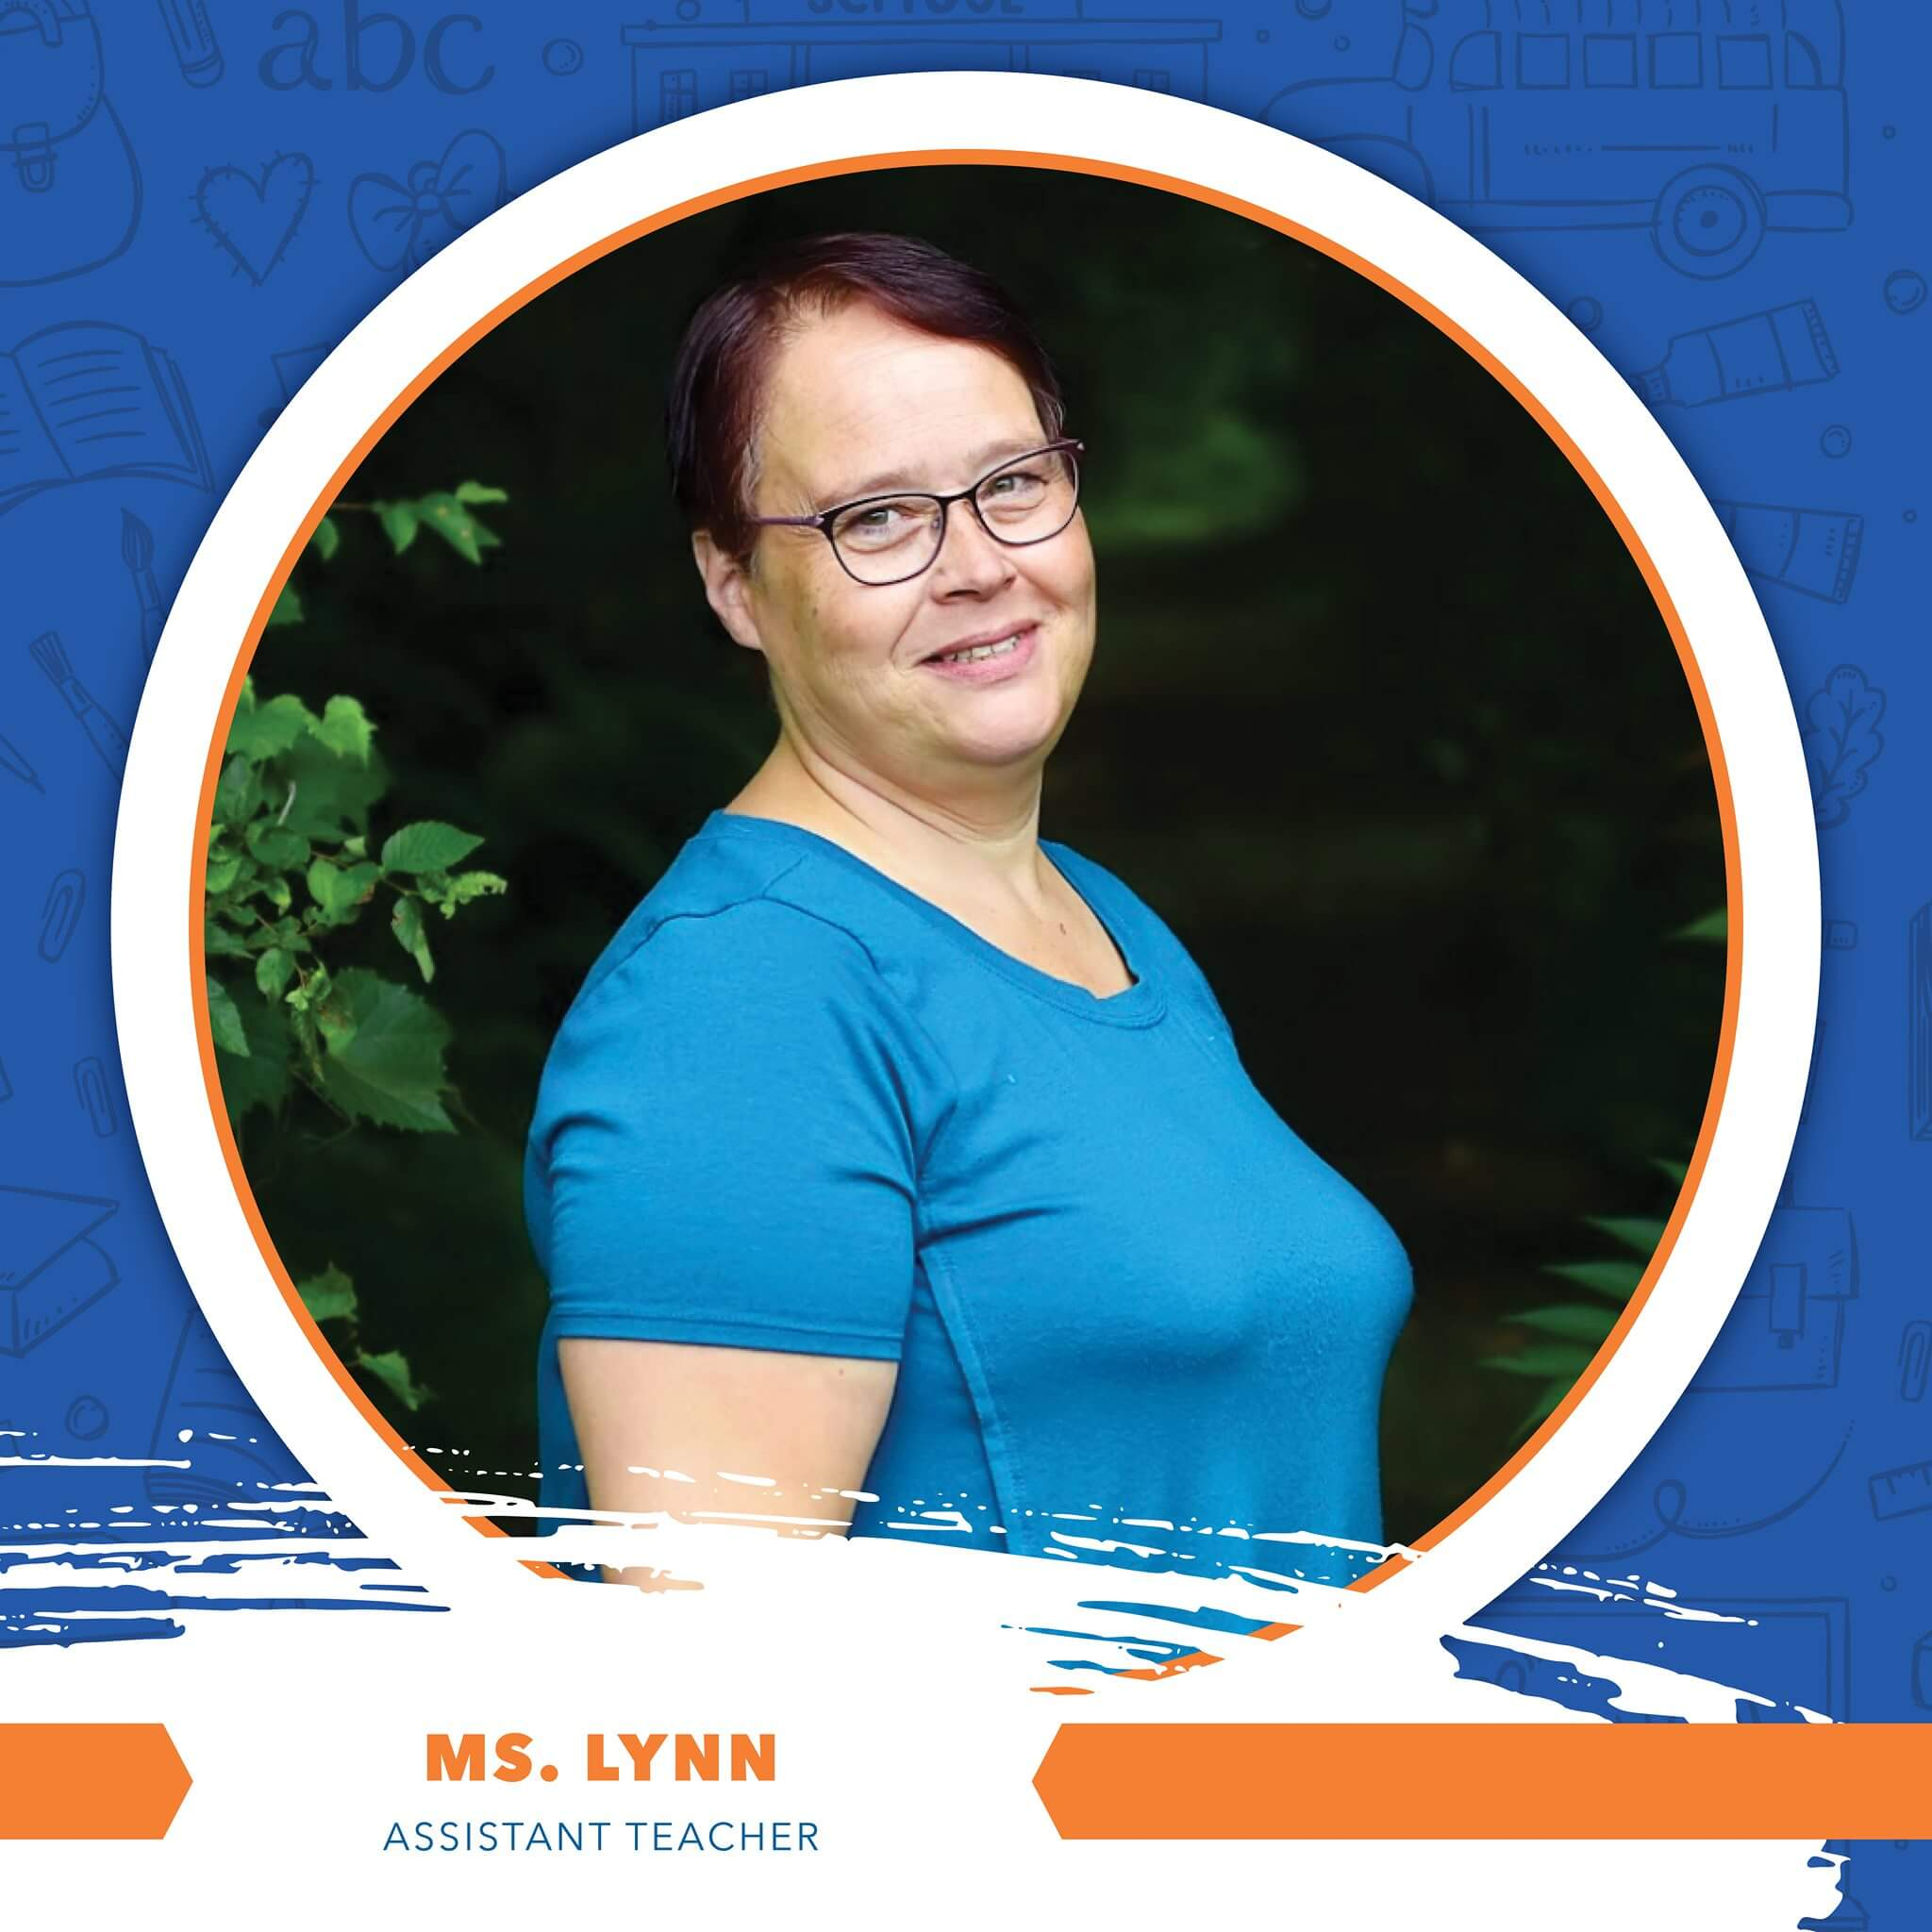 Ms. Lynn - Assistant Teacher